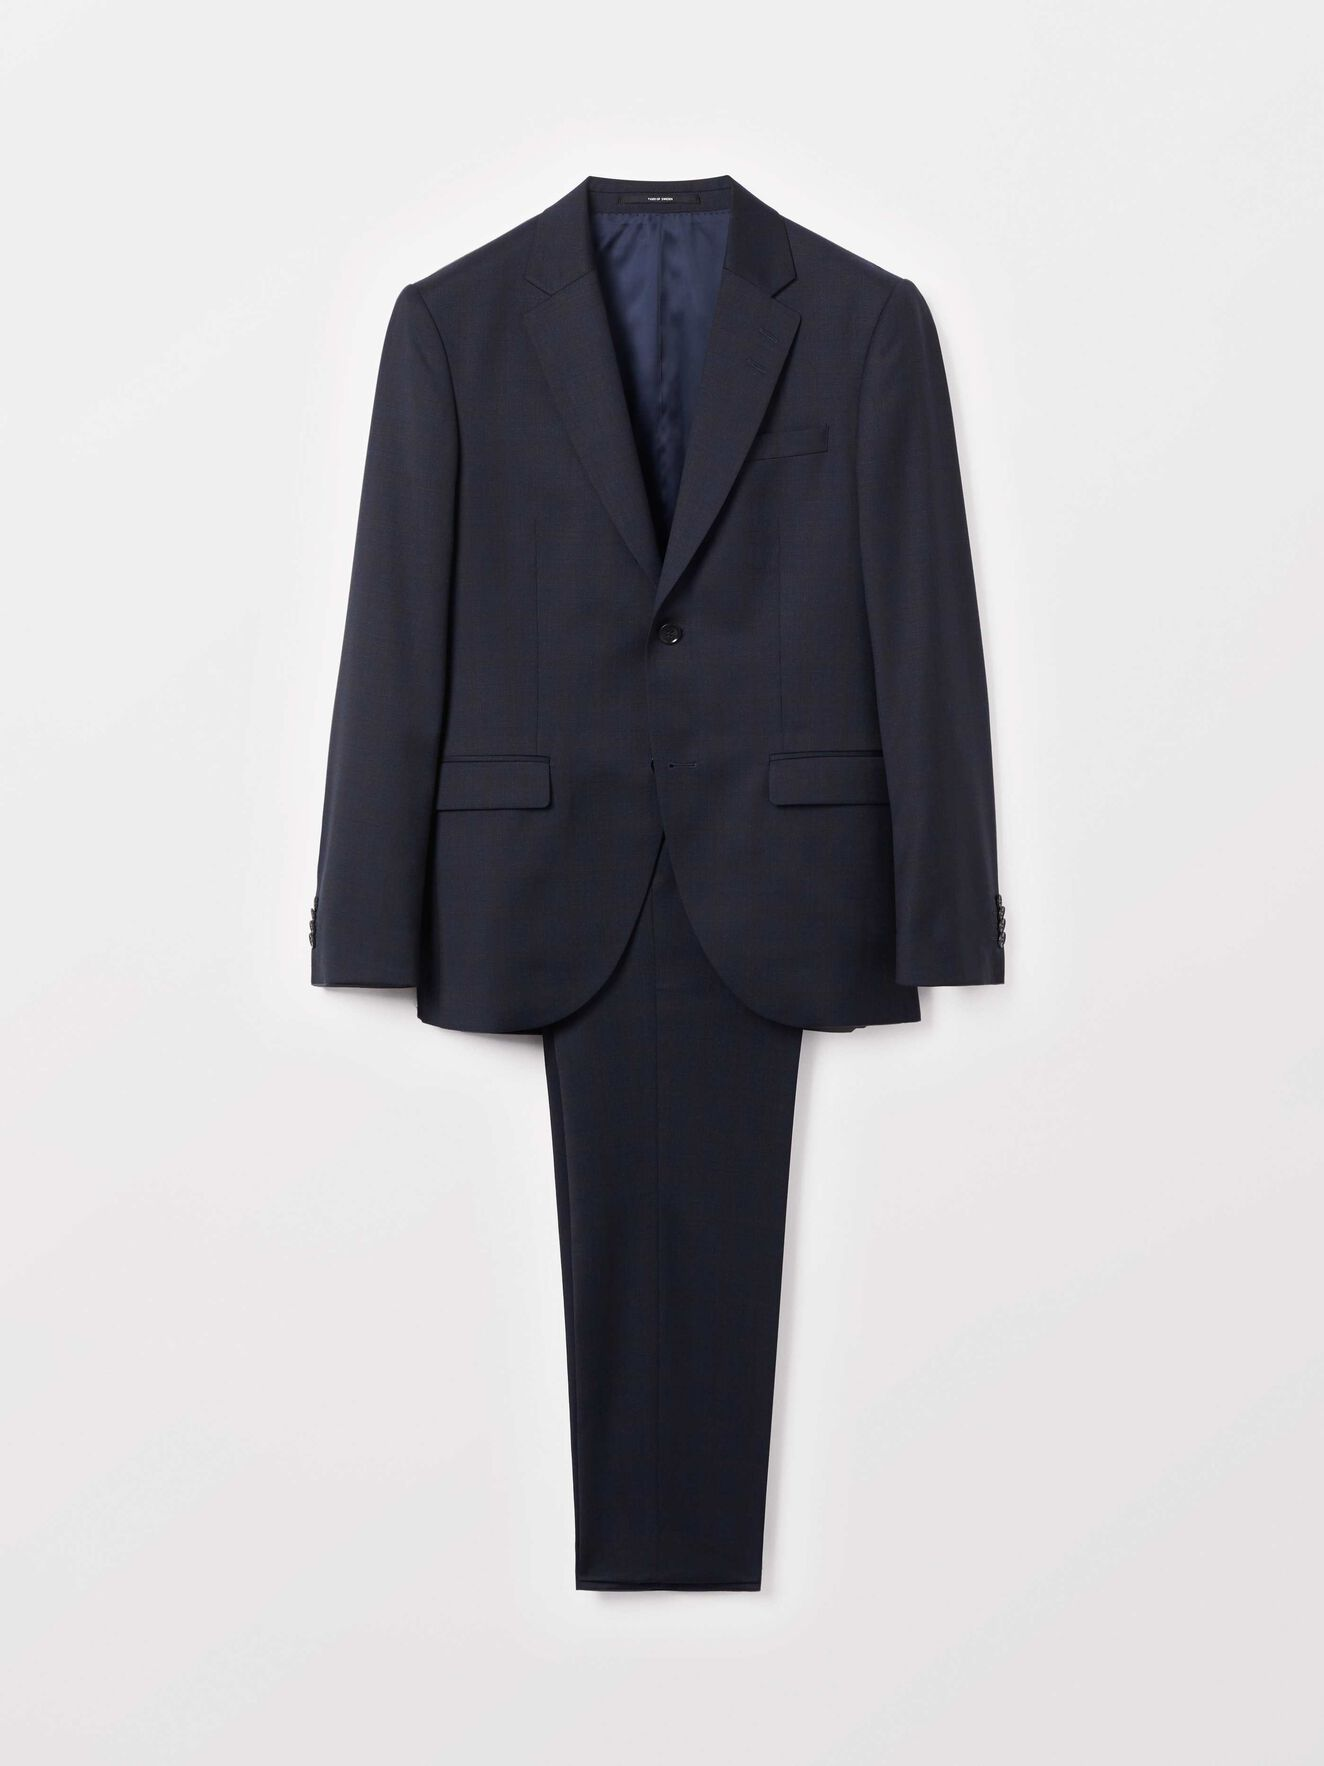 S.Jamonte Suit in Light Ink from Tiger of Sweden